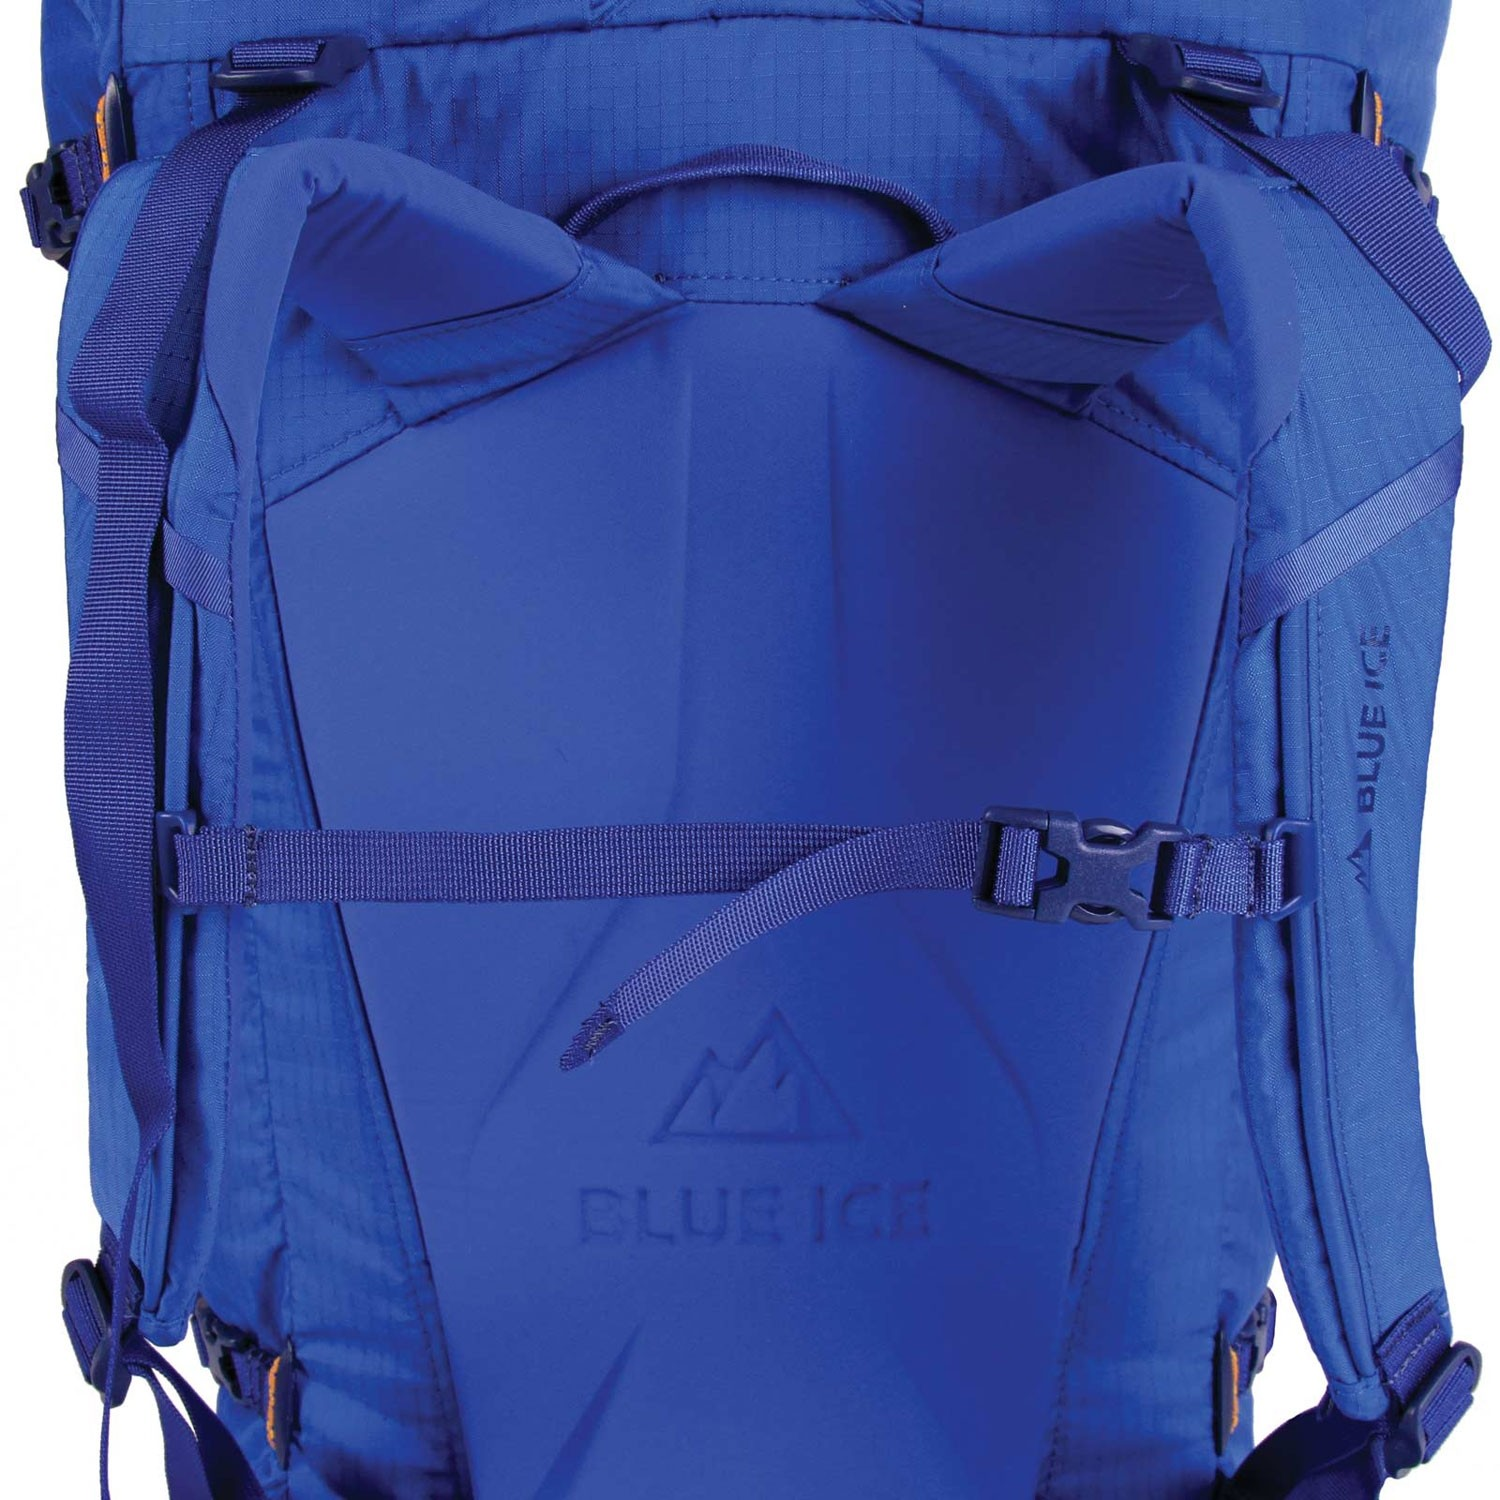 Blue Ice Warthog 45L Rucksack - Turkish Blue - suspension